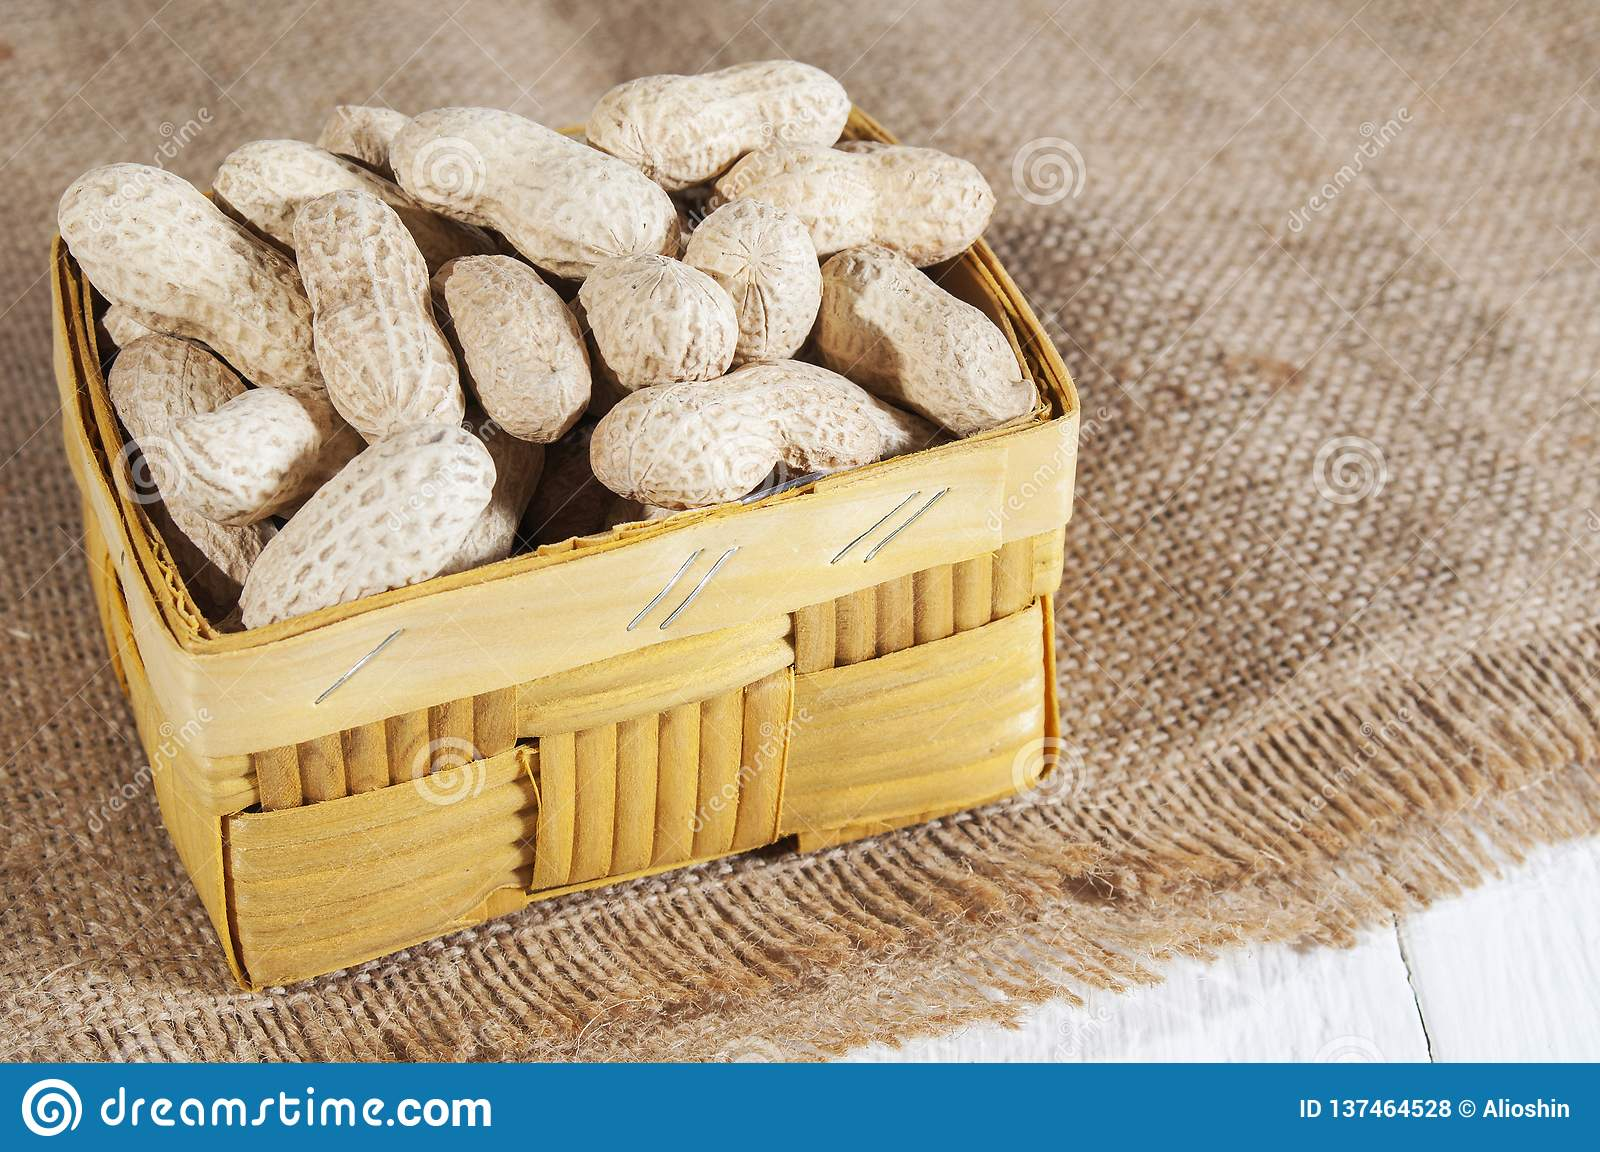 Groundnuts In Basket On A Burlap On A White Wooden Table